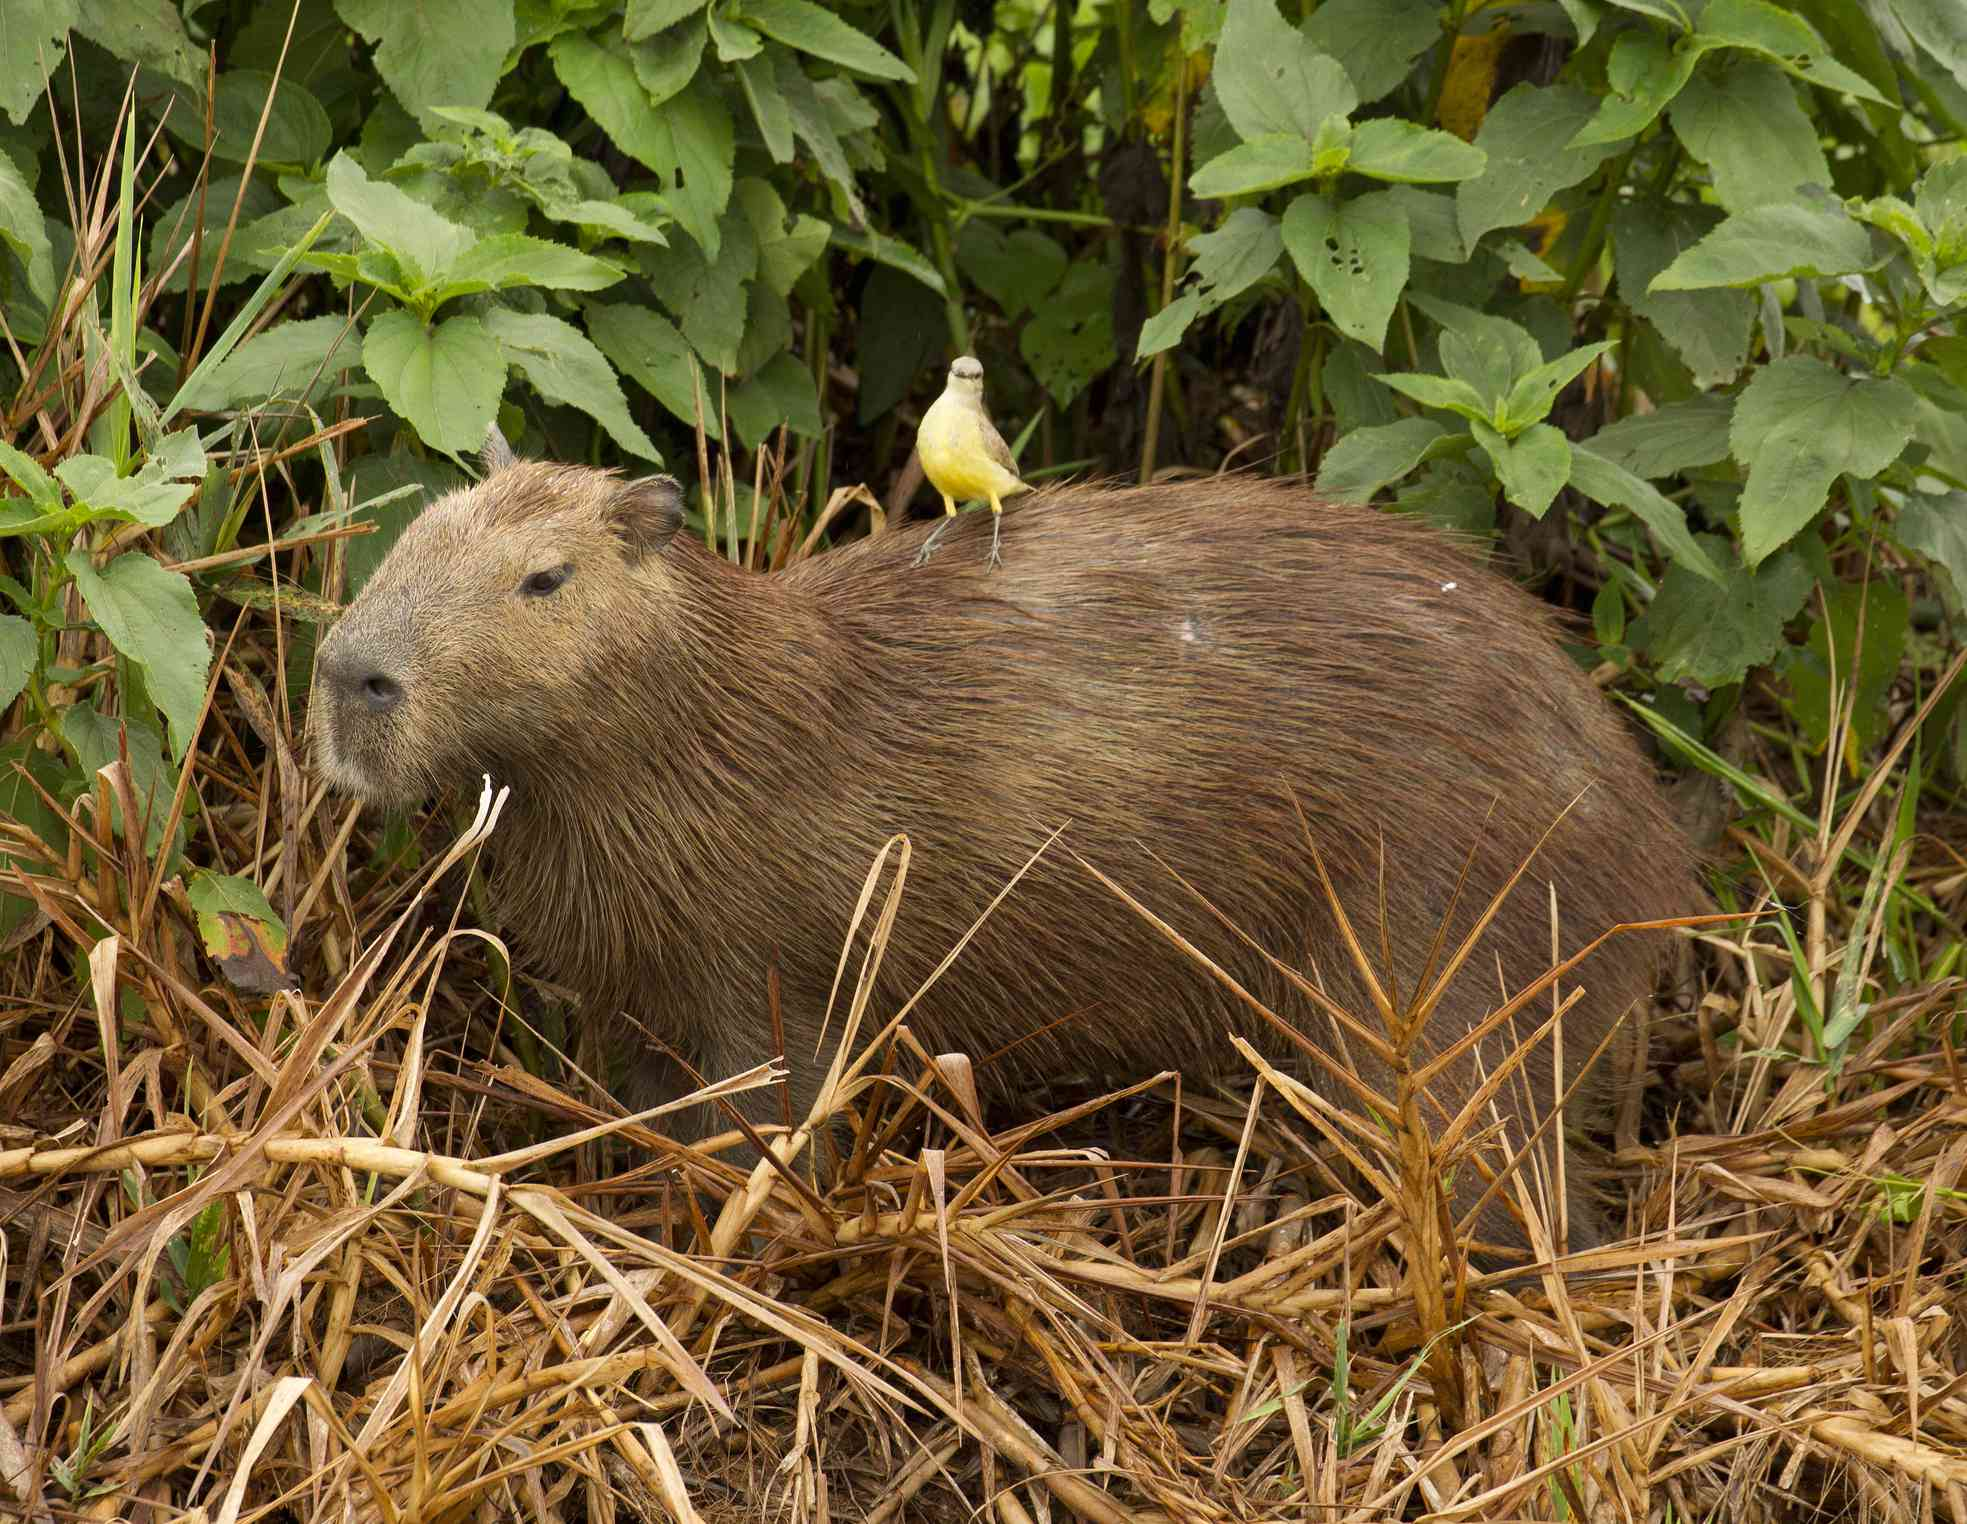 yellow cattle tyrant on the back of a capybara in the bushes